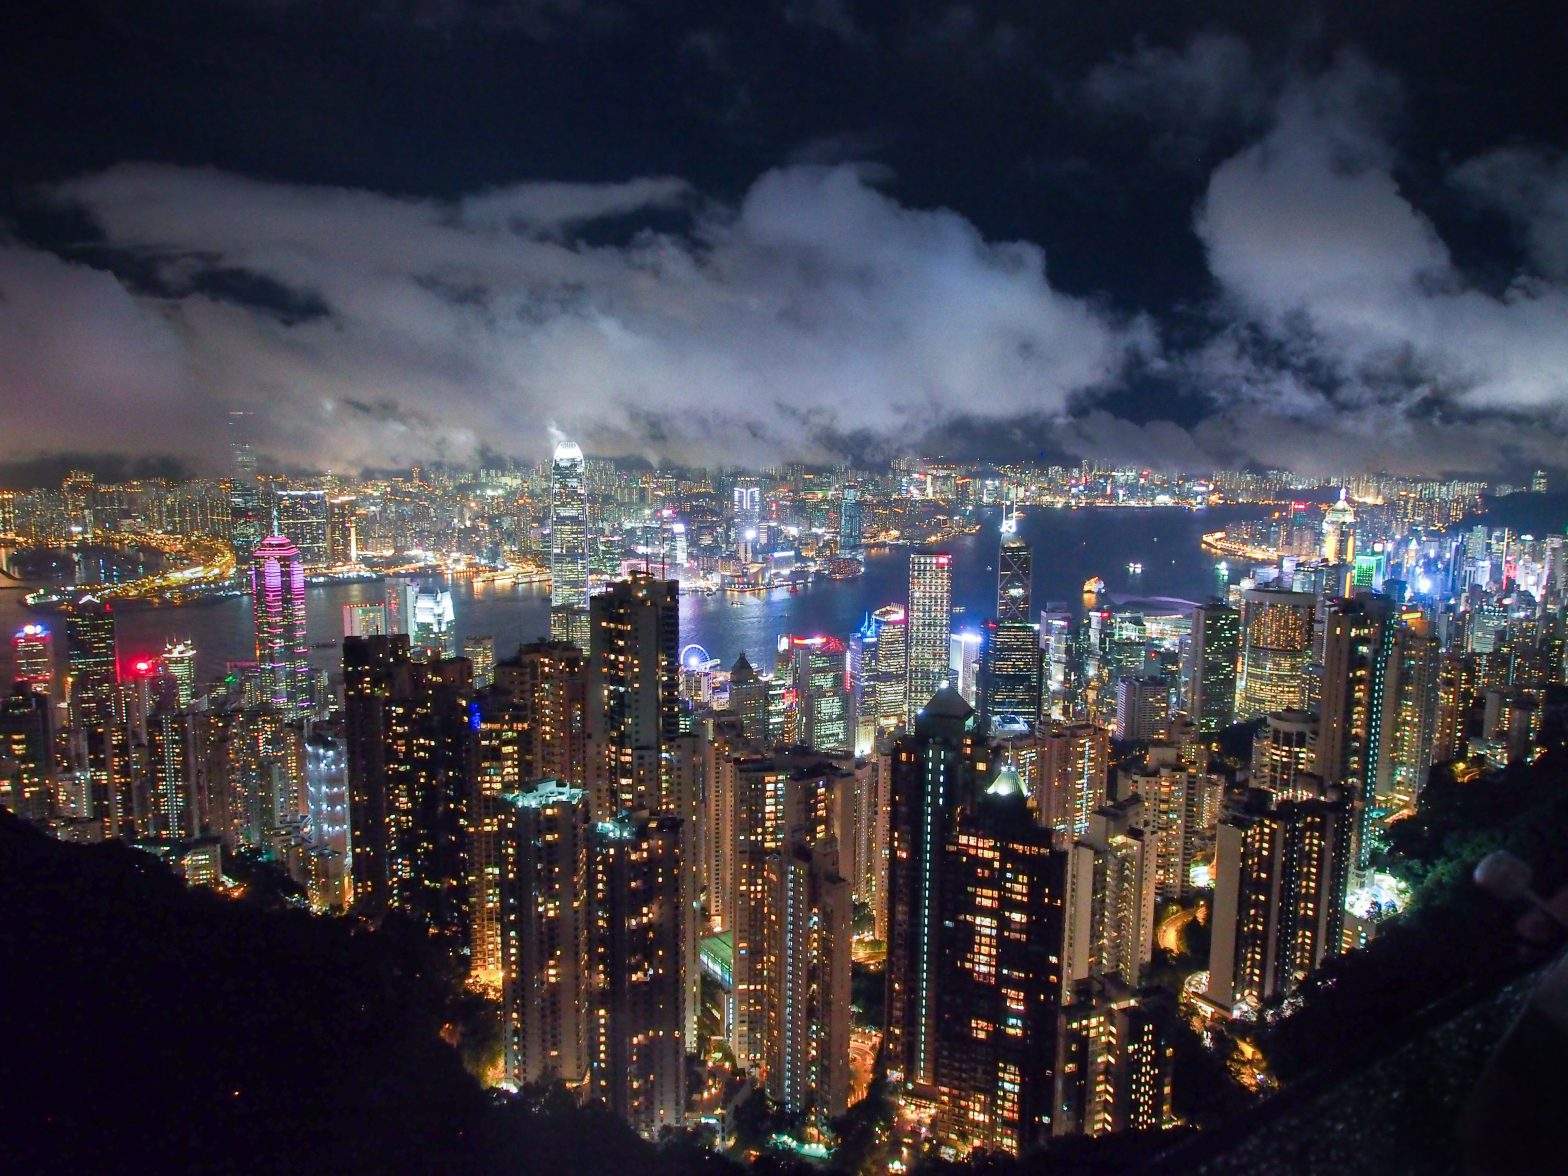 hong kong at night by yun xu tjymdpl unsplash